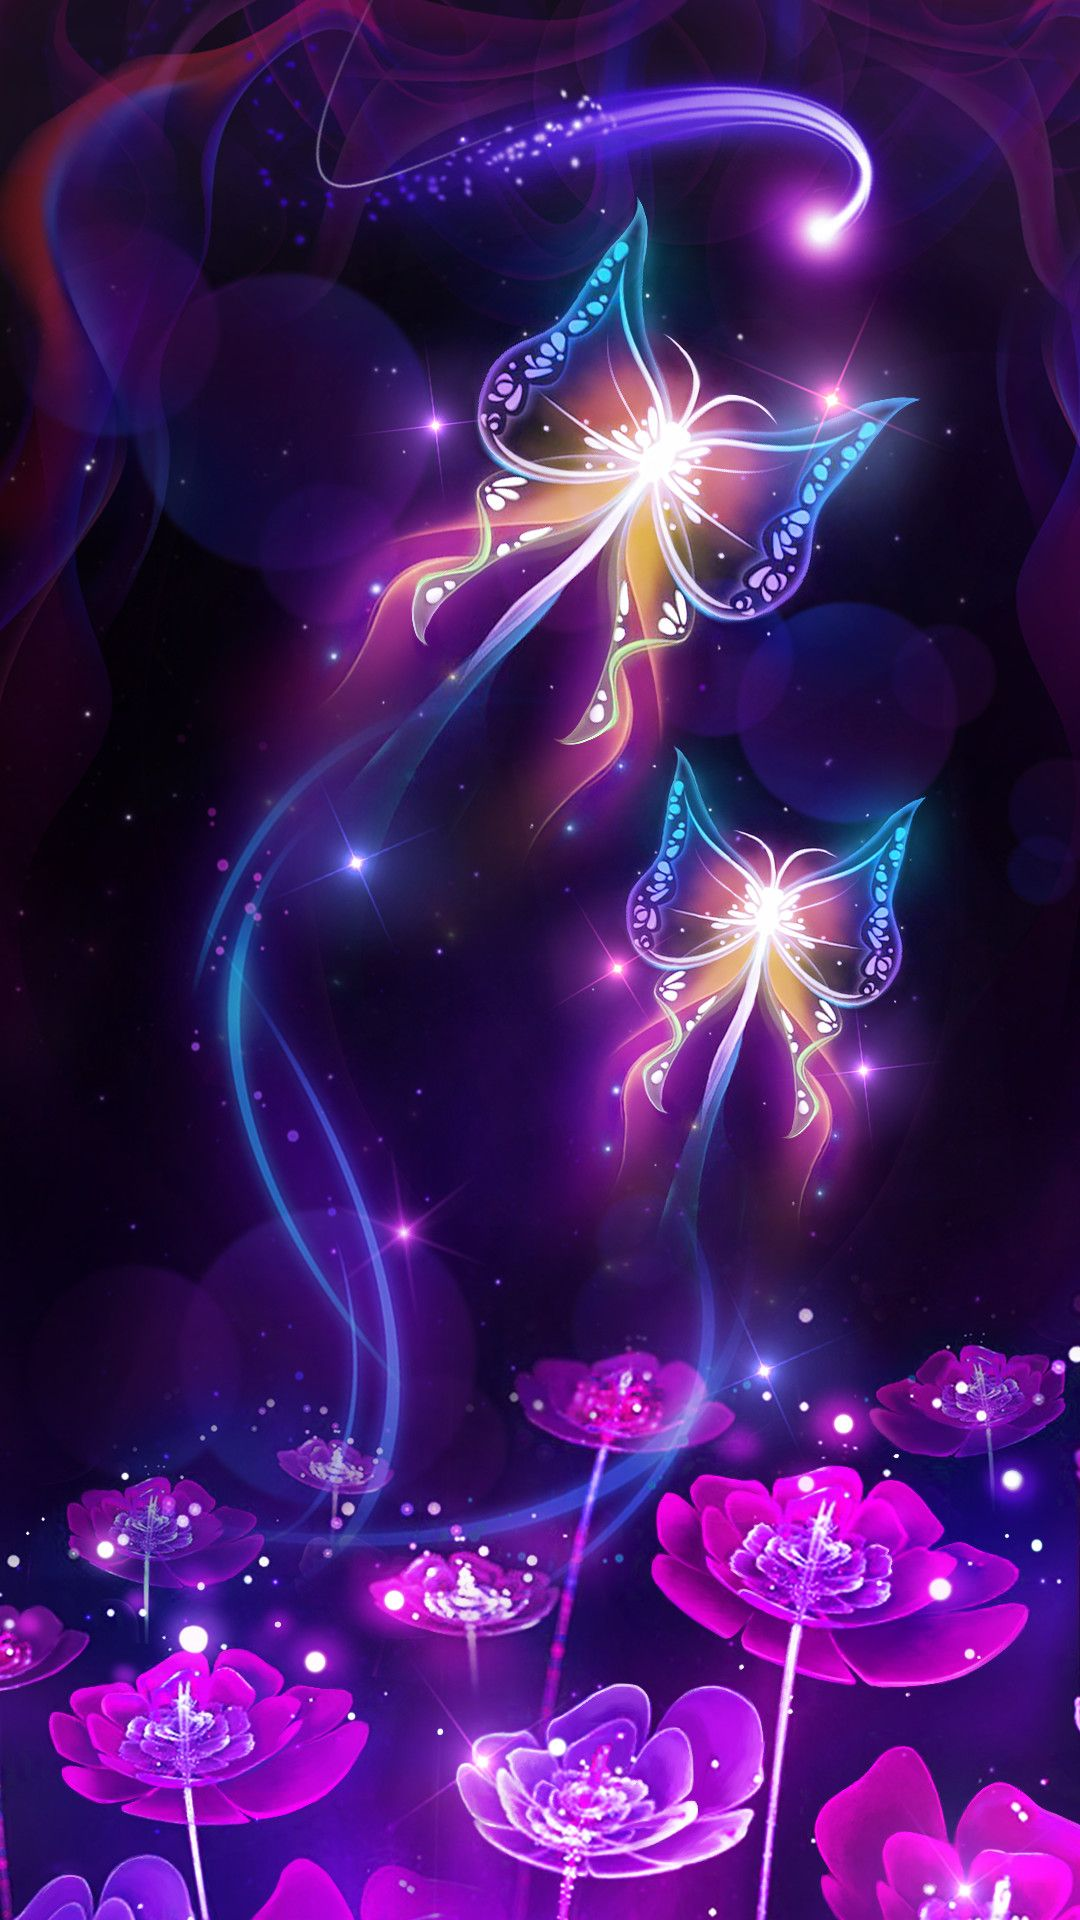 Res 1080x1920 Shiny Neon Butterfly Live Wallpaper Android Live Wallpaper Background It Butterfly Wallpaper Backgrounds Butterfly Wallpaper Neon Wallpaper